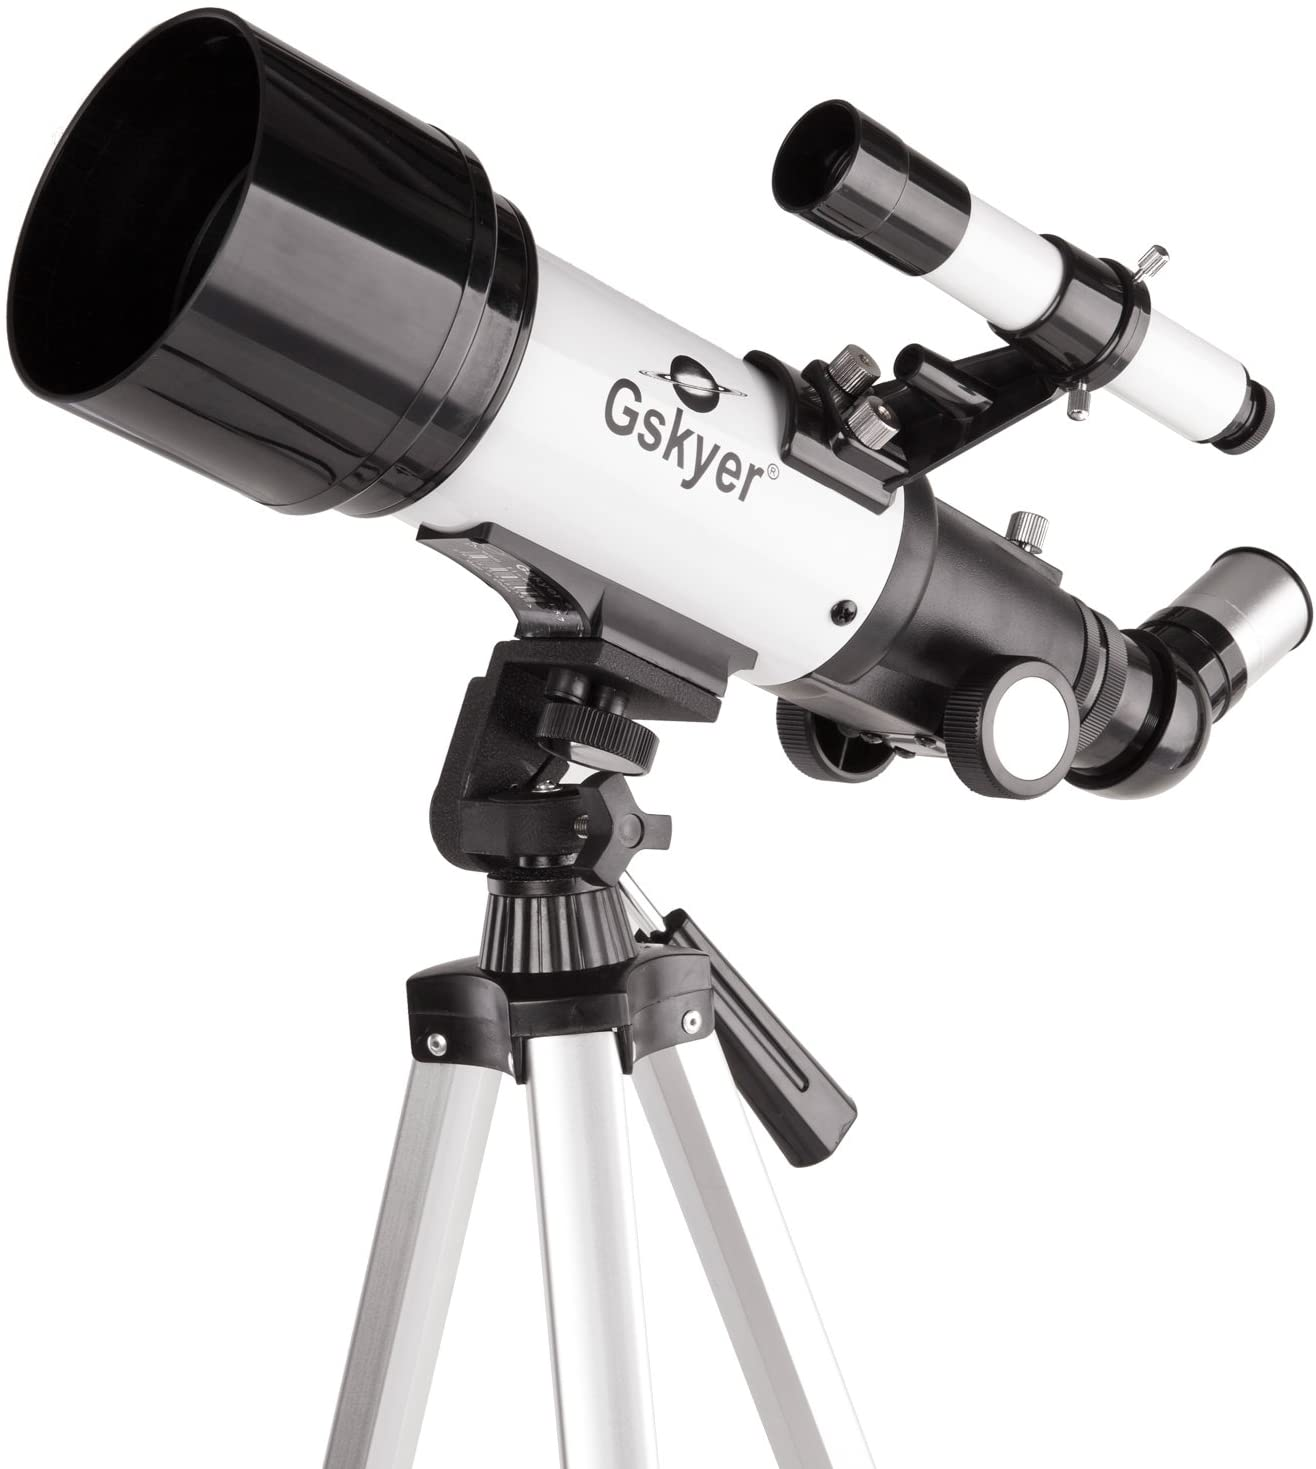 Gskyer Travel Scope 70mm